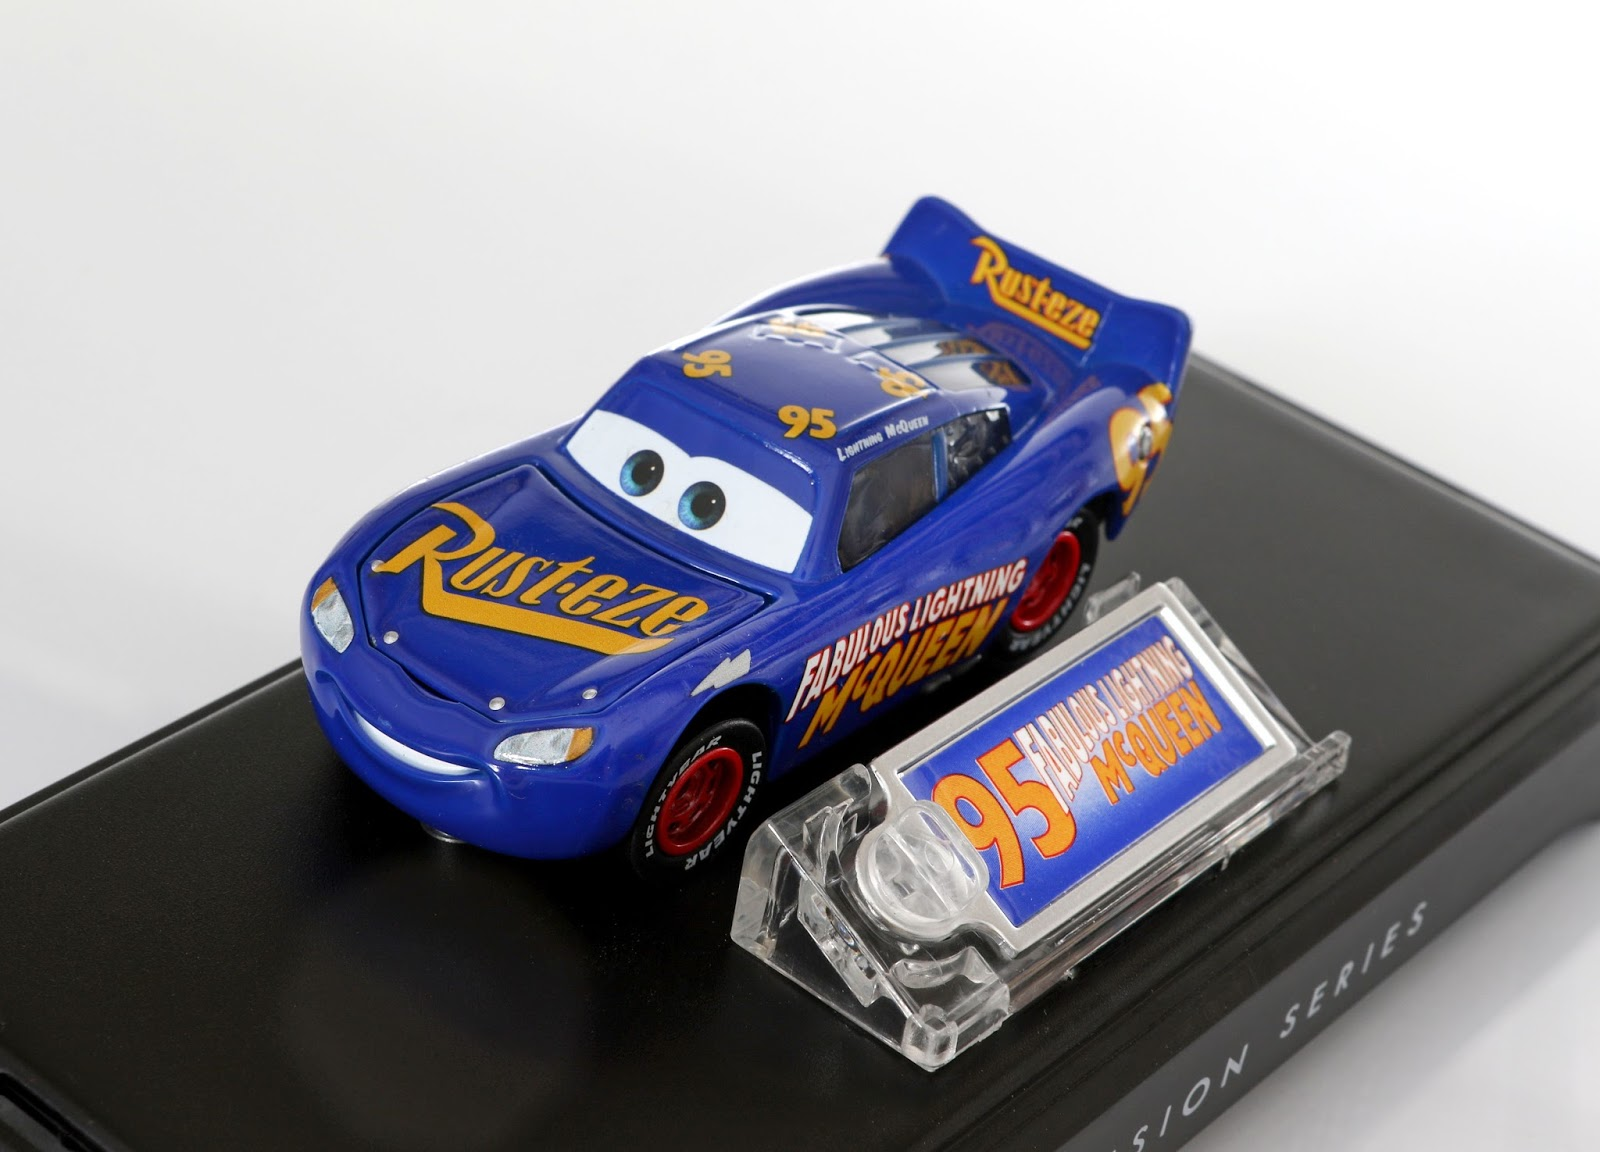 Cars 3 Fabulous Lightning McQueen Precision Series kmart Mail Away